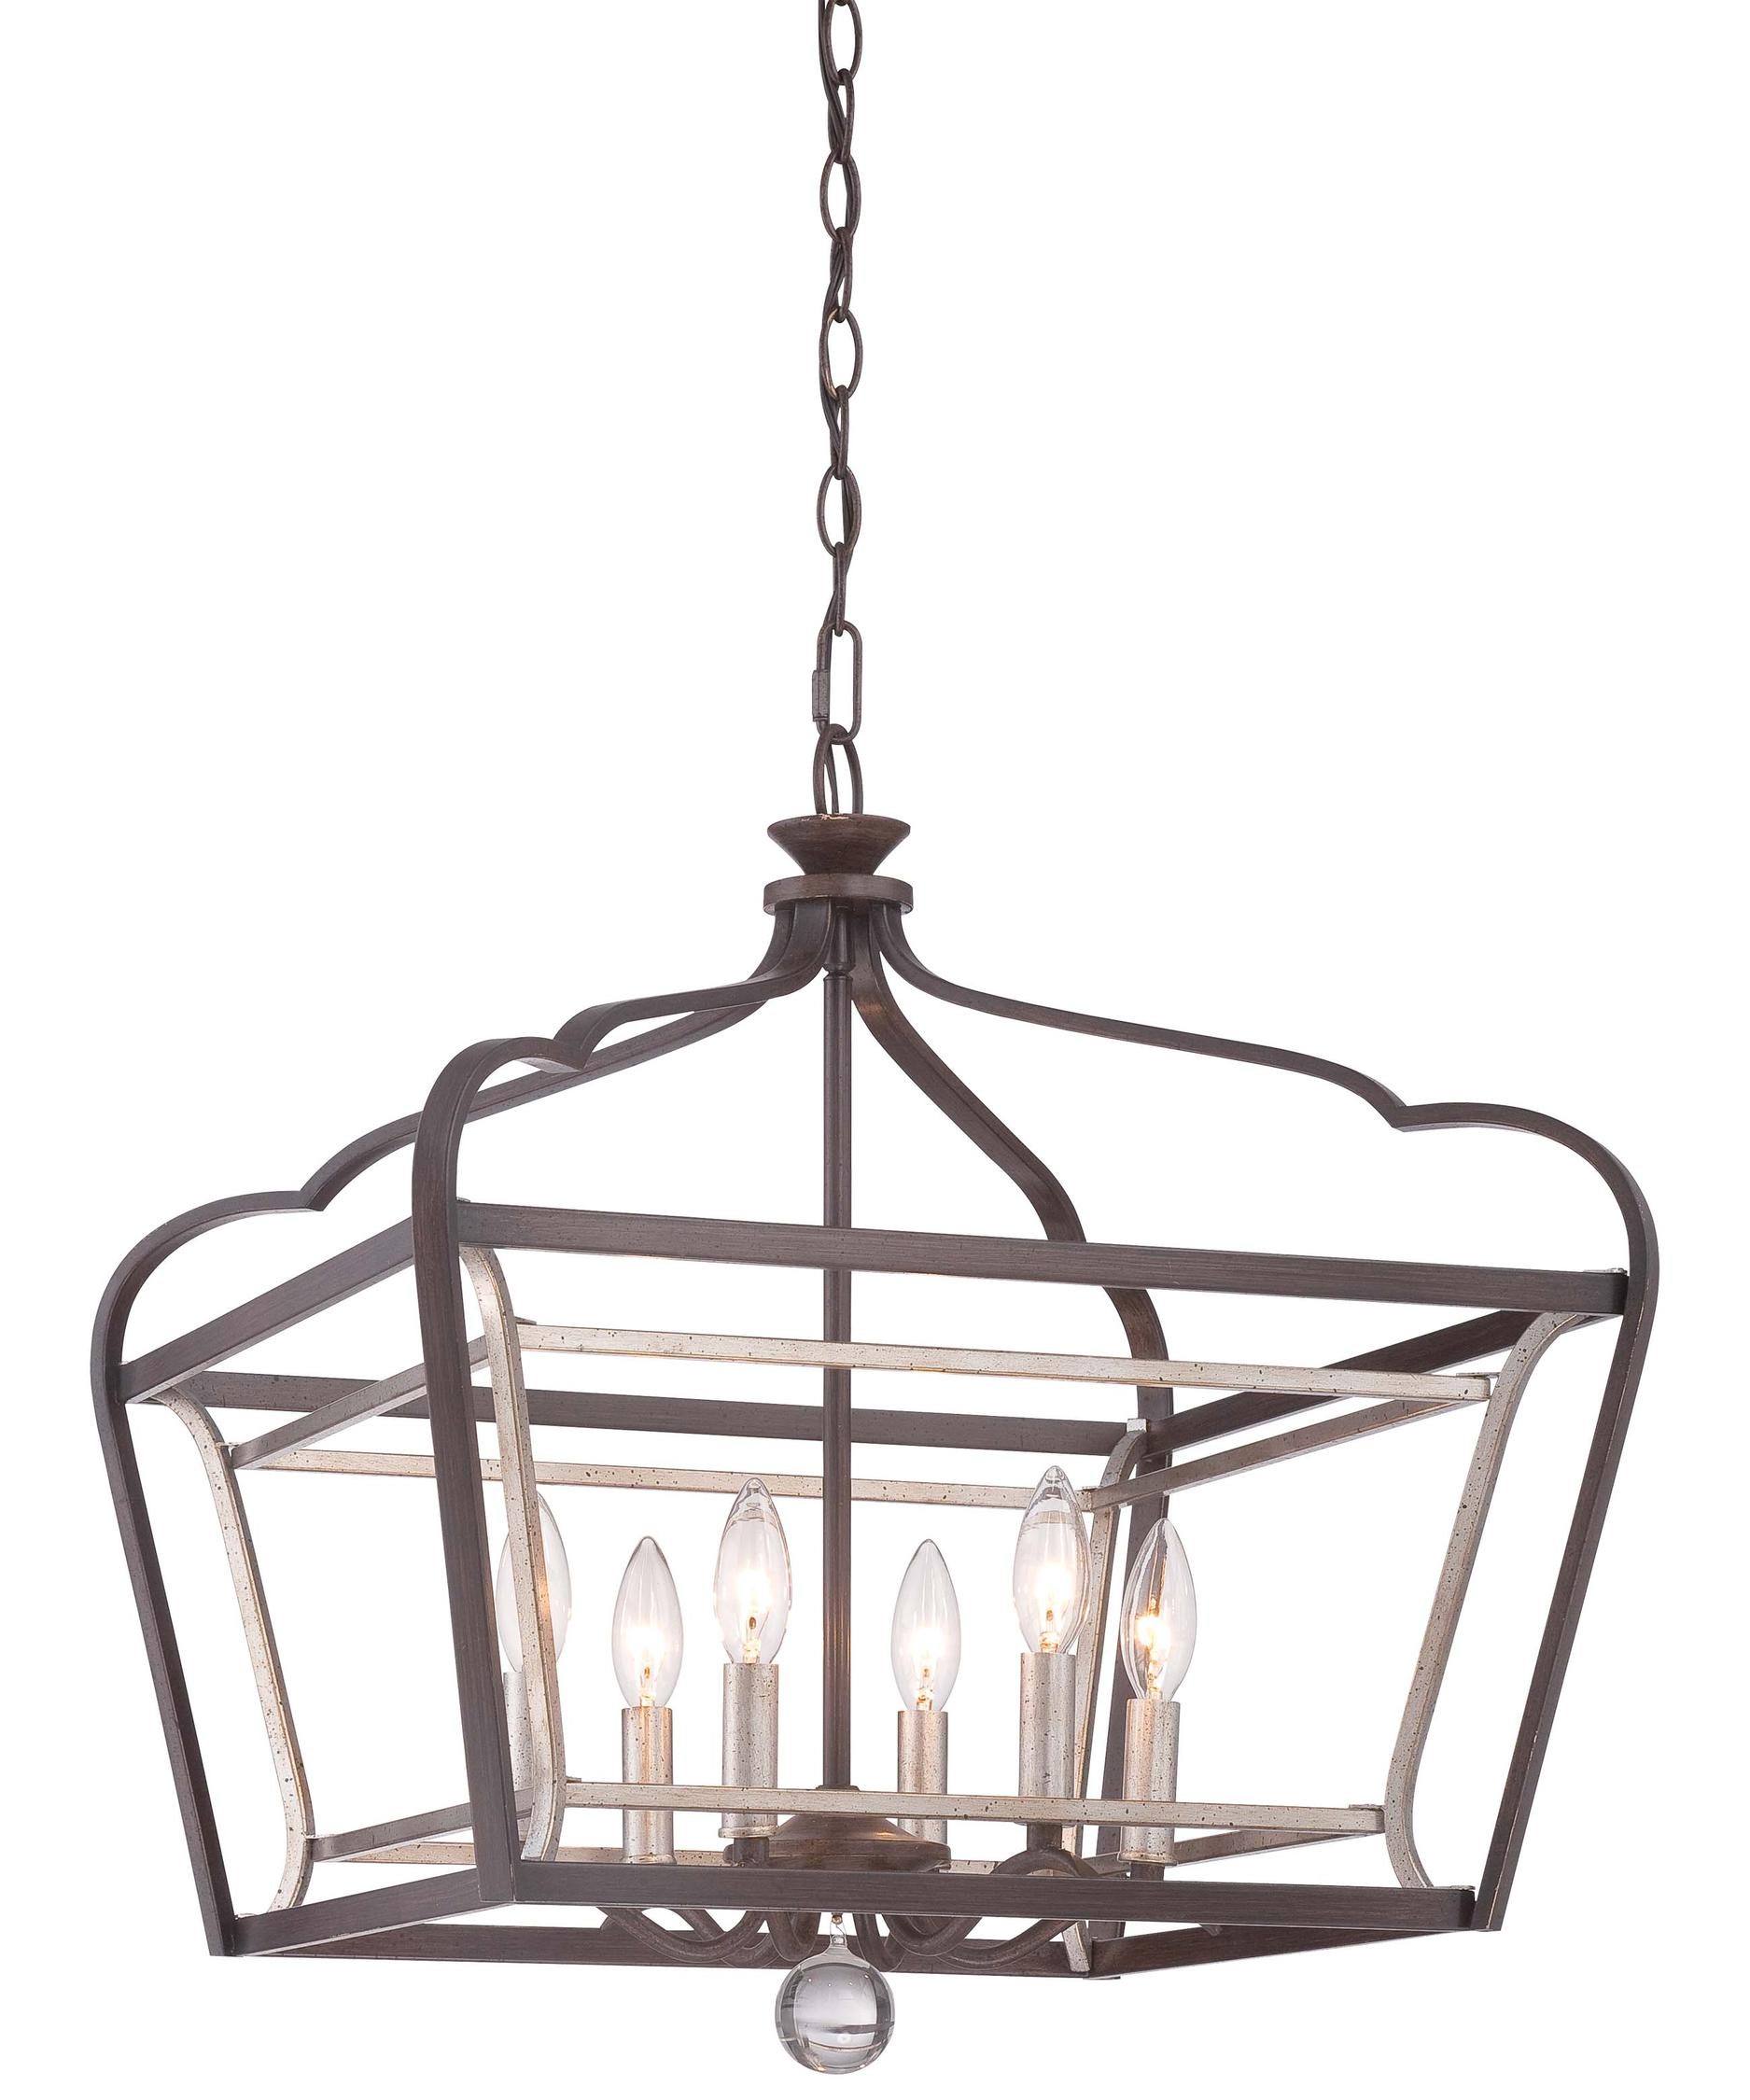 shown in dark rubbed sienna finish - Minka Lighting